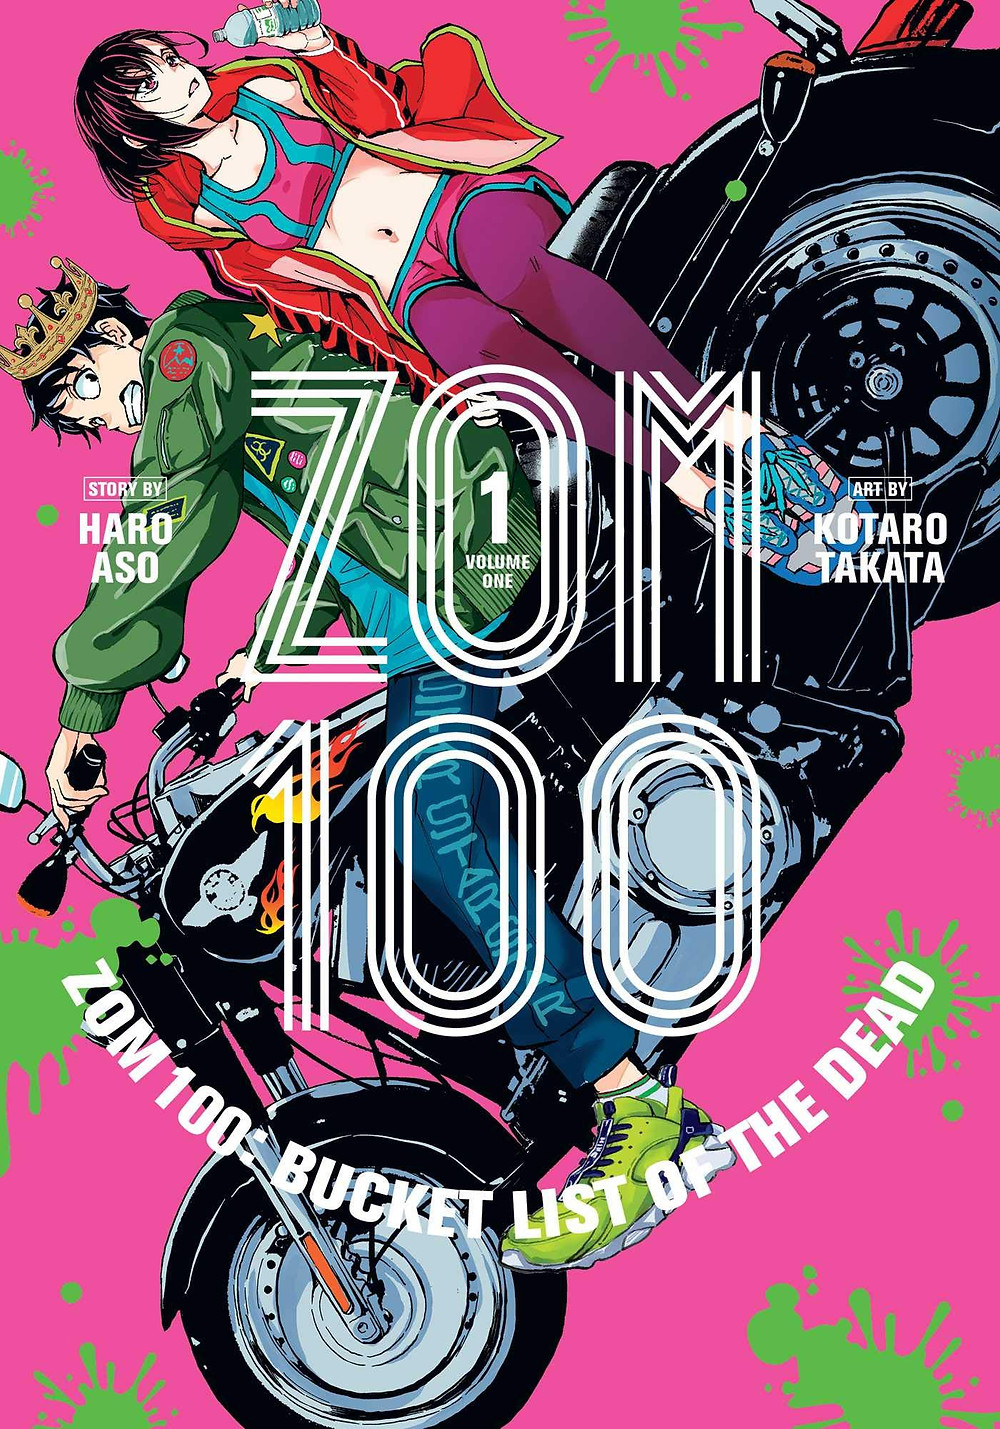 ZOM 100, VOL #1, Cover, VIZ Media, Kotaro Takata